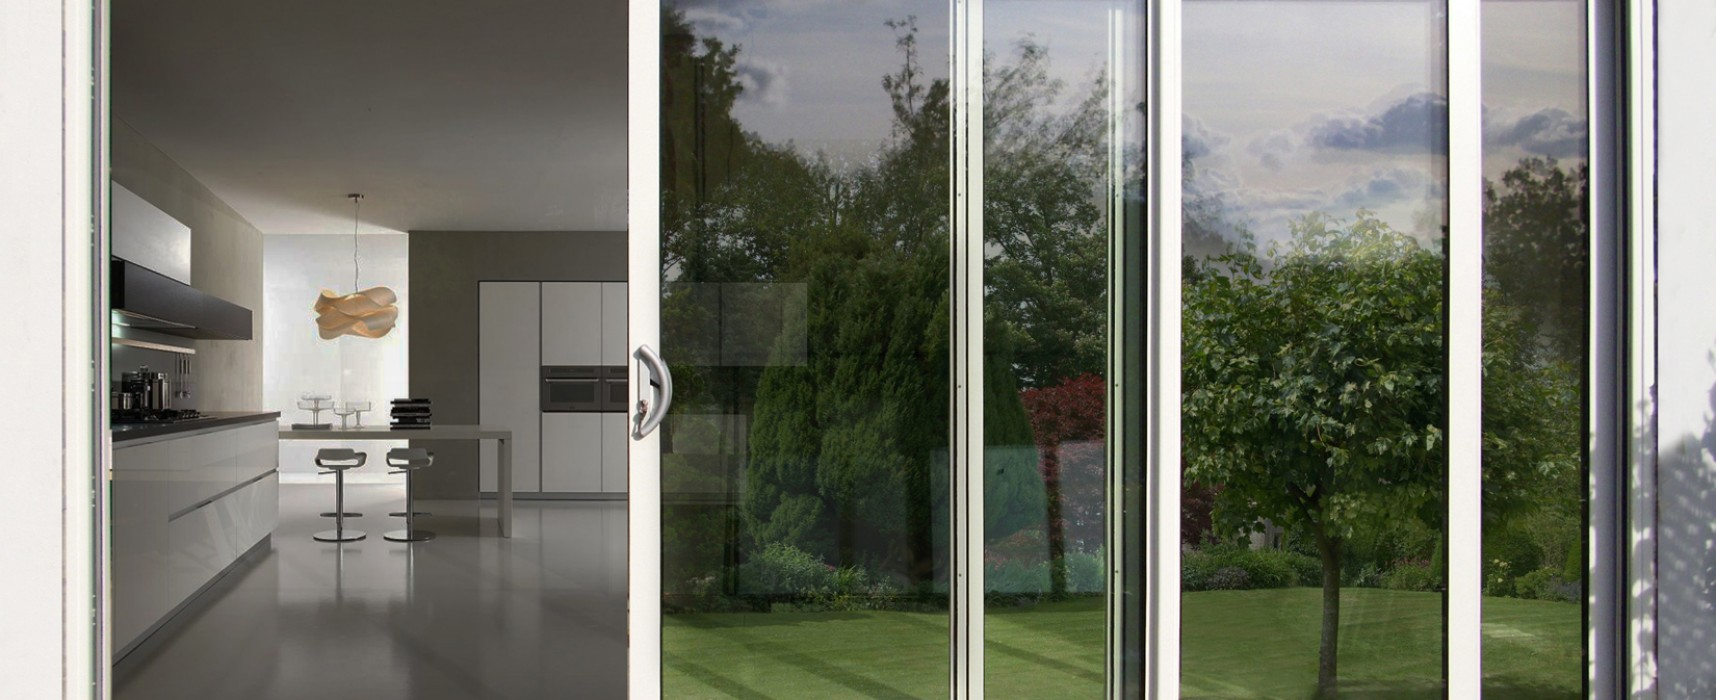 Why choose a sliding door for your home?